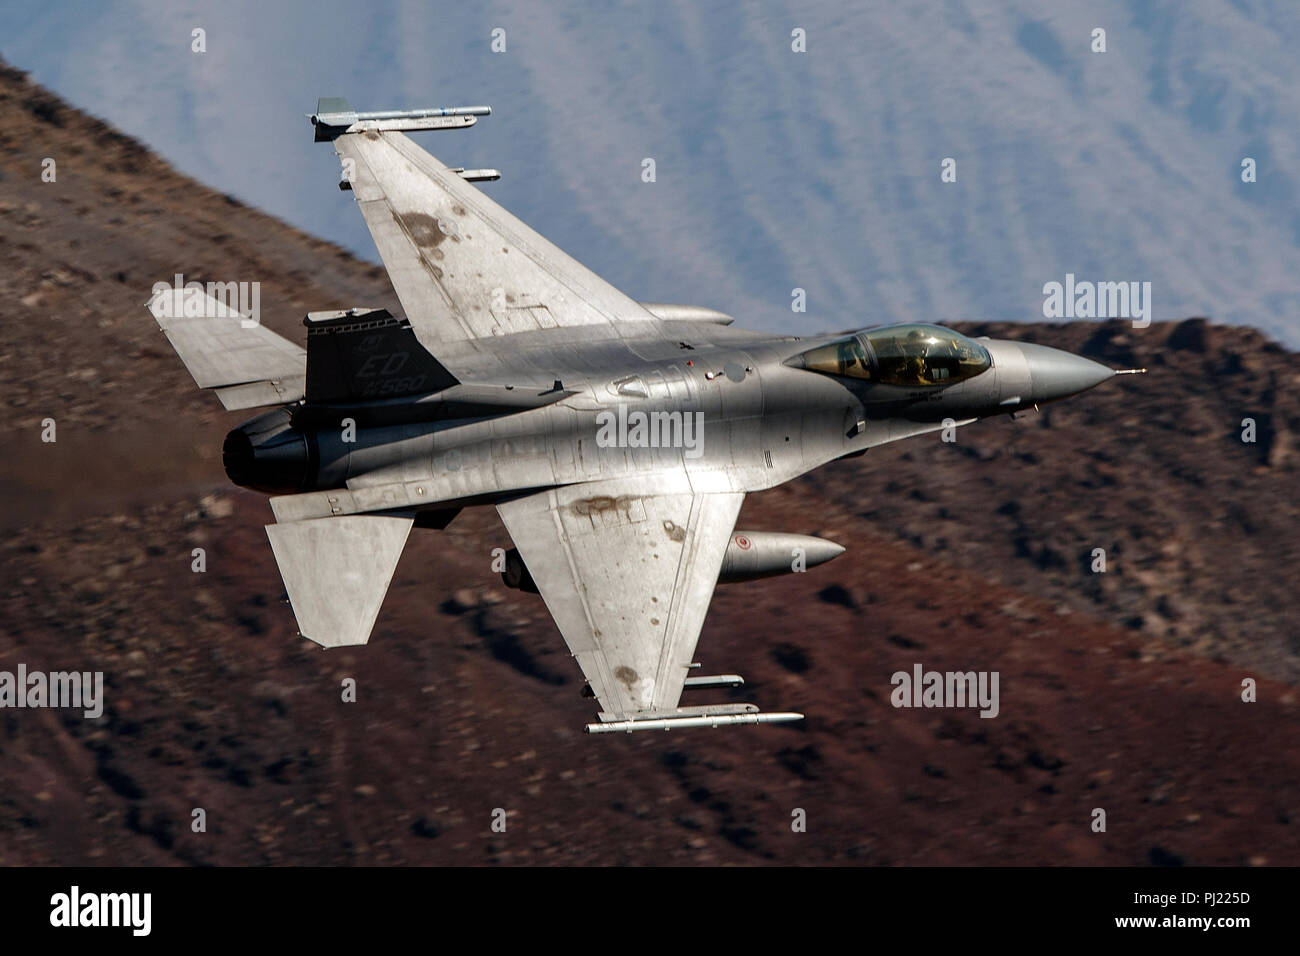 United States Air Force General Dynamics F-16C Fighting Falcon Block 30B (85-1560) flies low level on the Jedi Transition through Star Wars Canyon / Rainbow Canyon, Death Valley National Park, Panamint Springs, California, United States of America - Stock Image